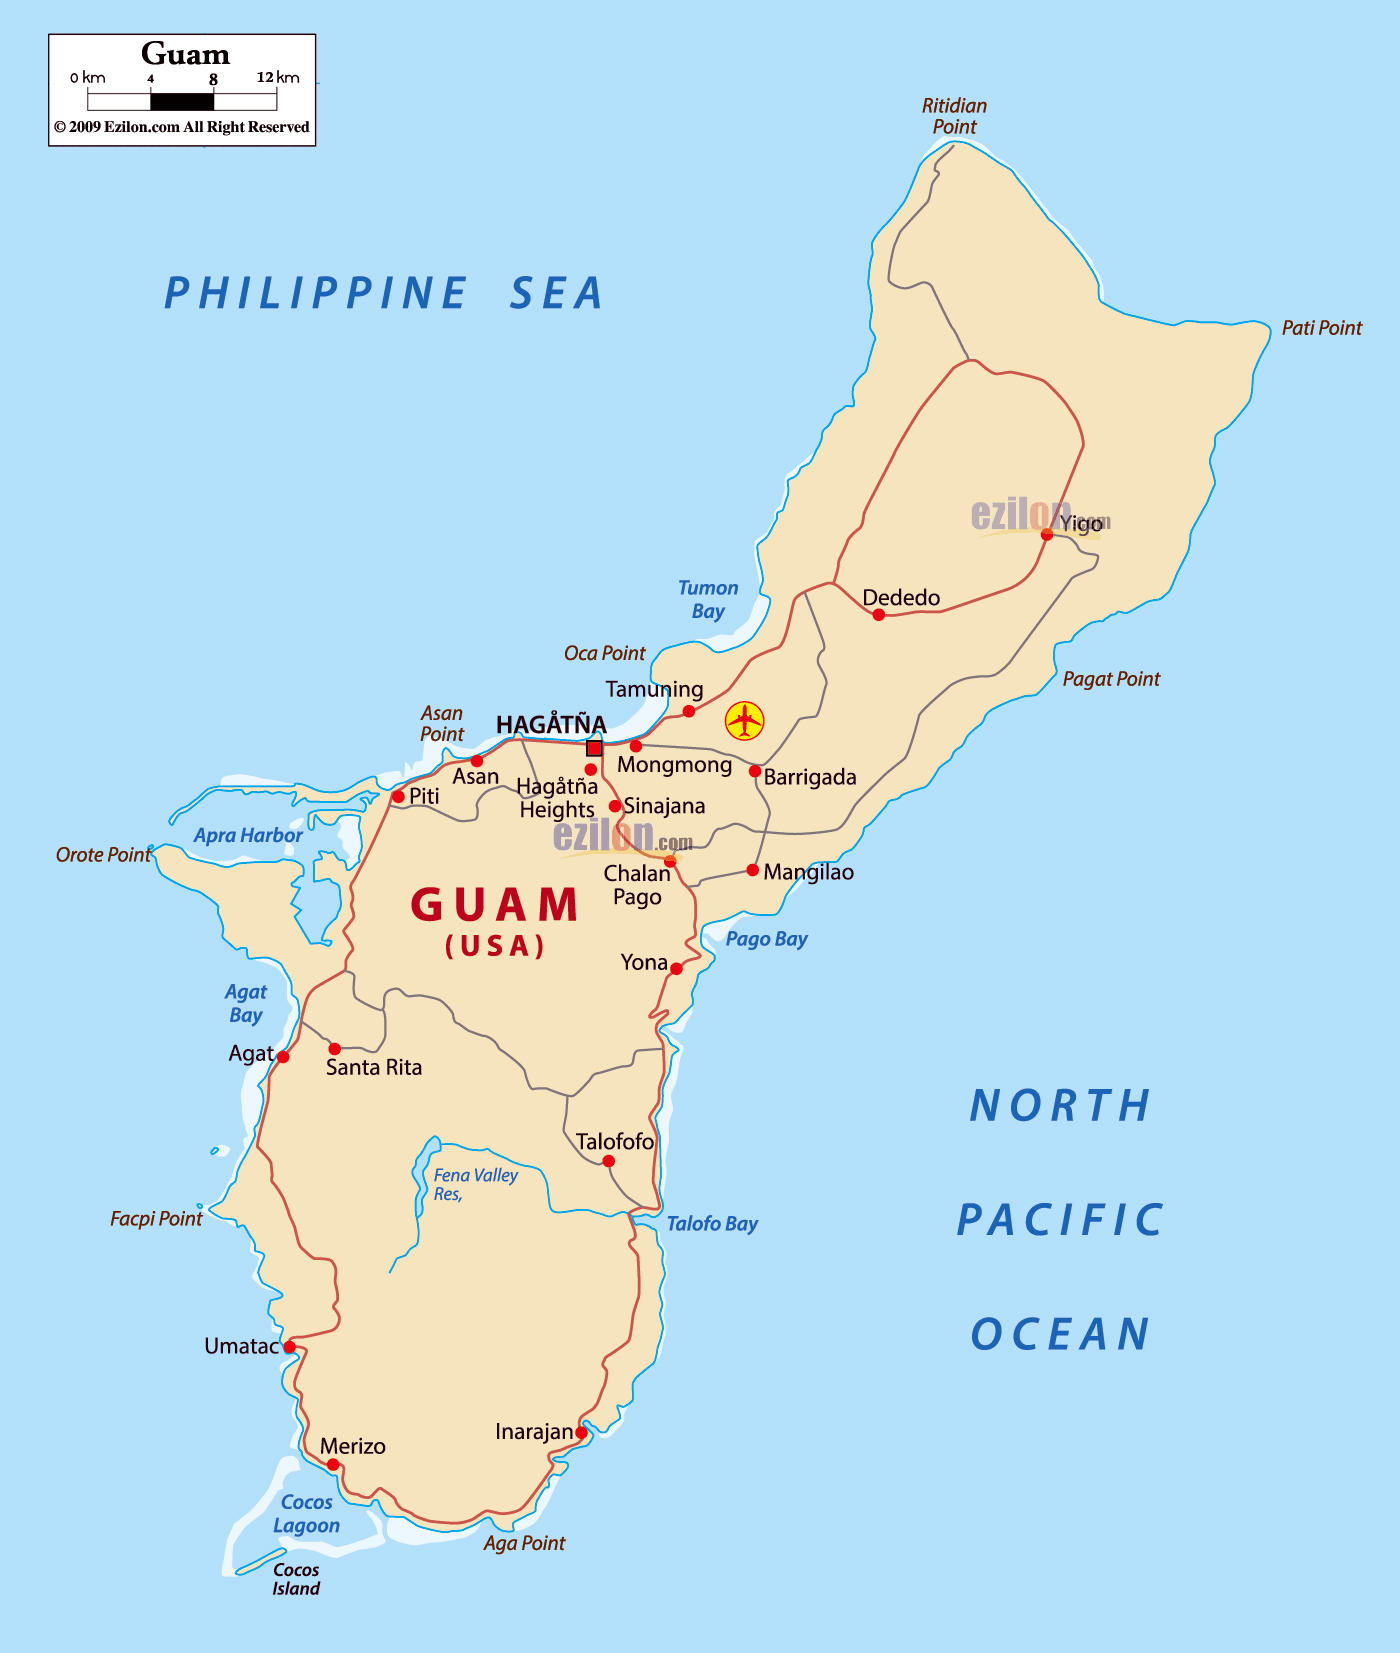 Large Detailed Road Map Of Guam With Cities And Airports Guam - Guam world map